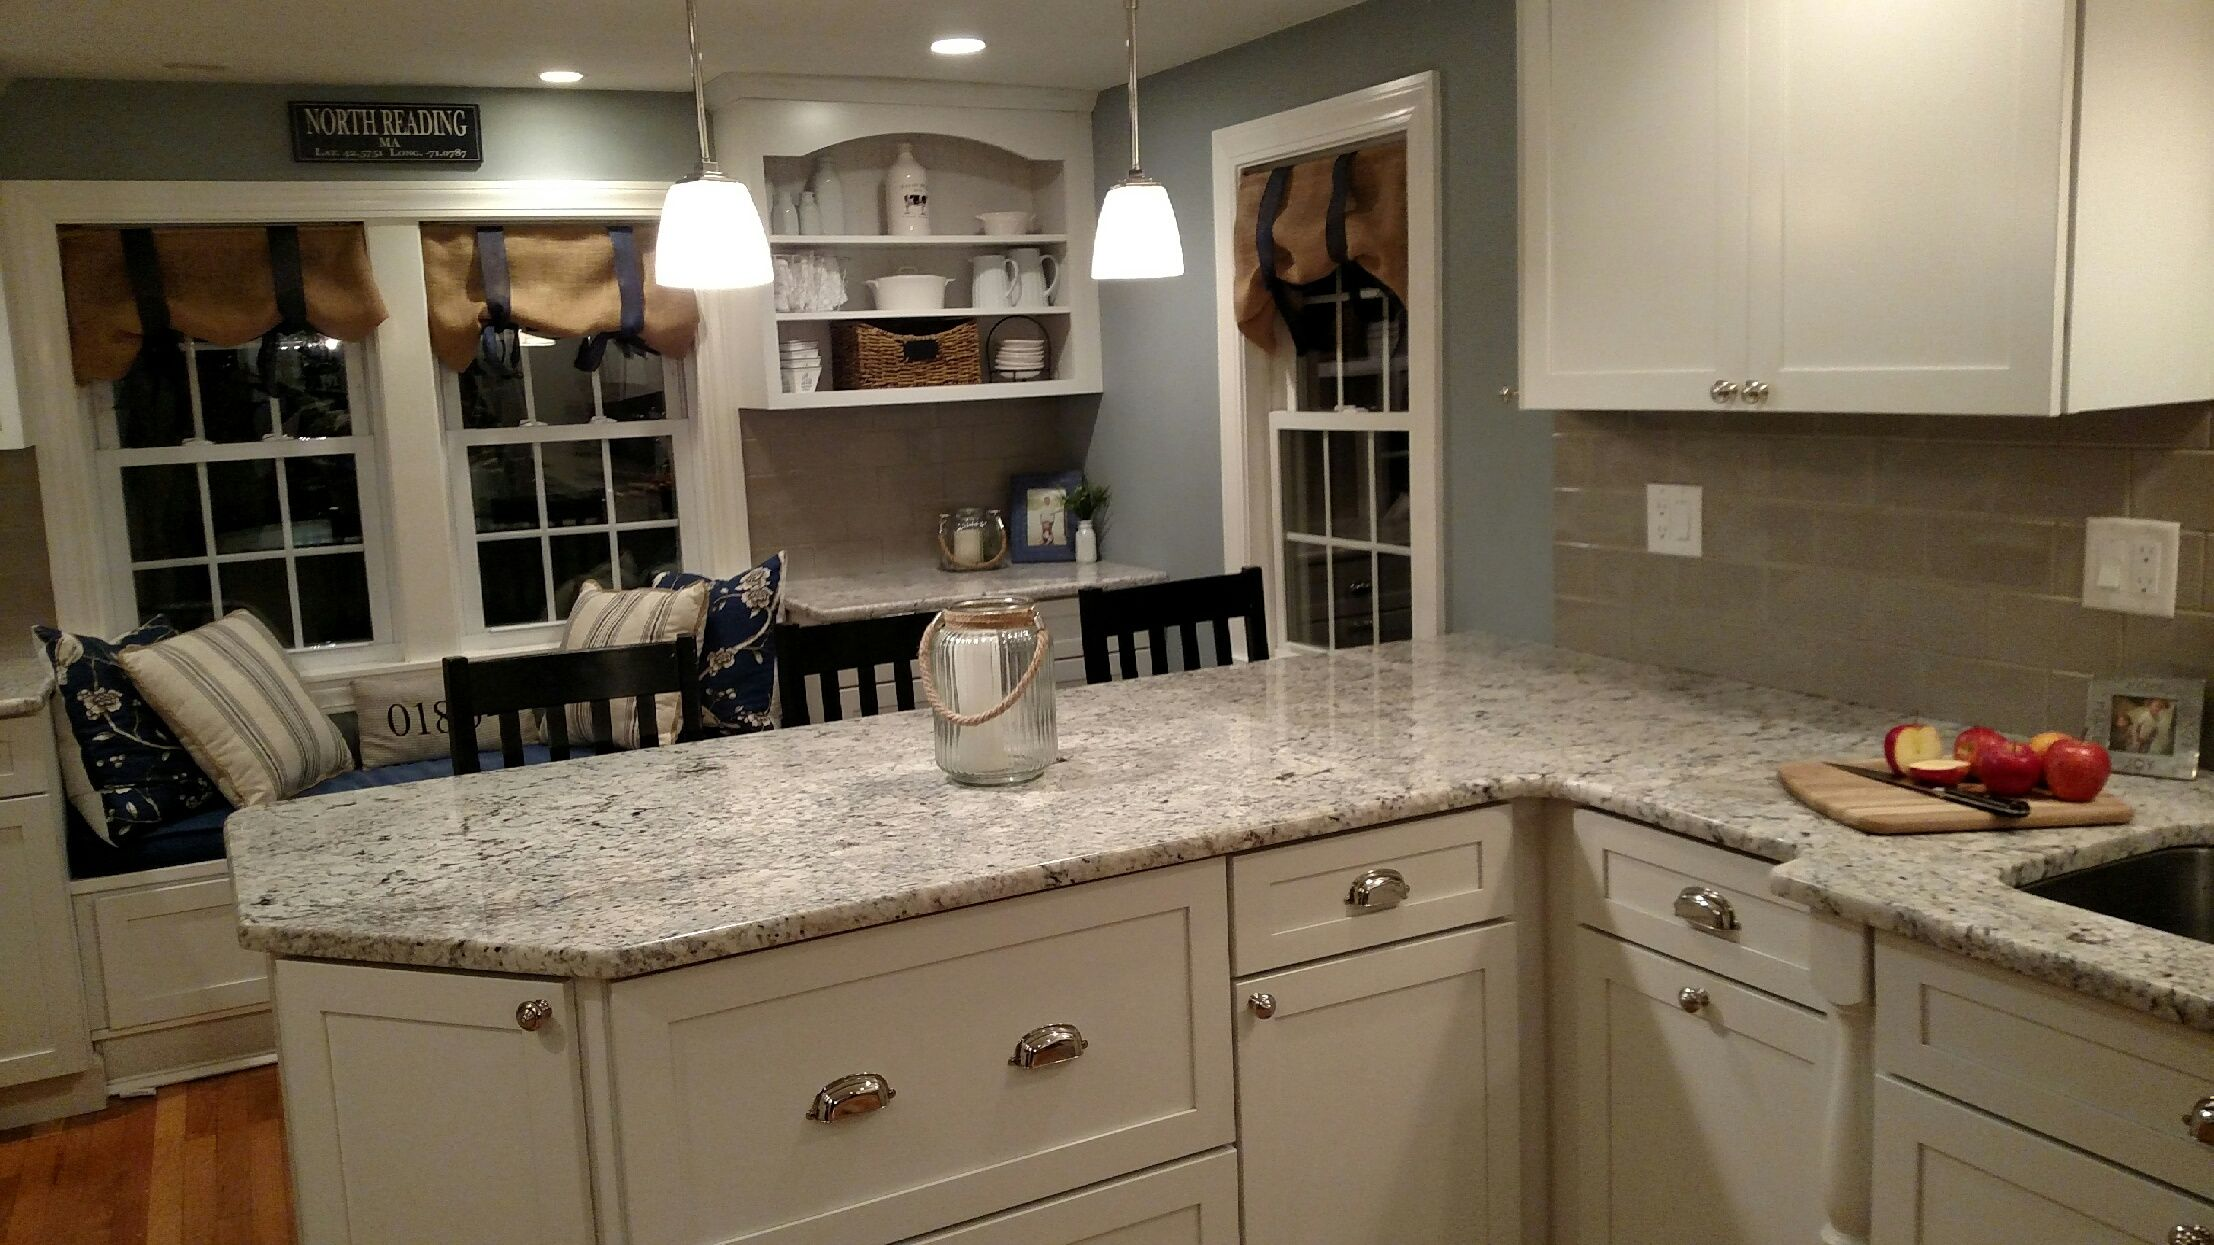 White Ice Granite Thornton Shaker Cabinets by KraftMaid